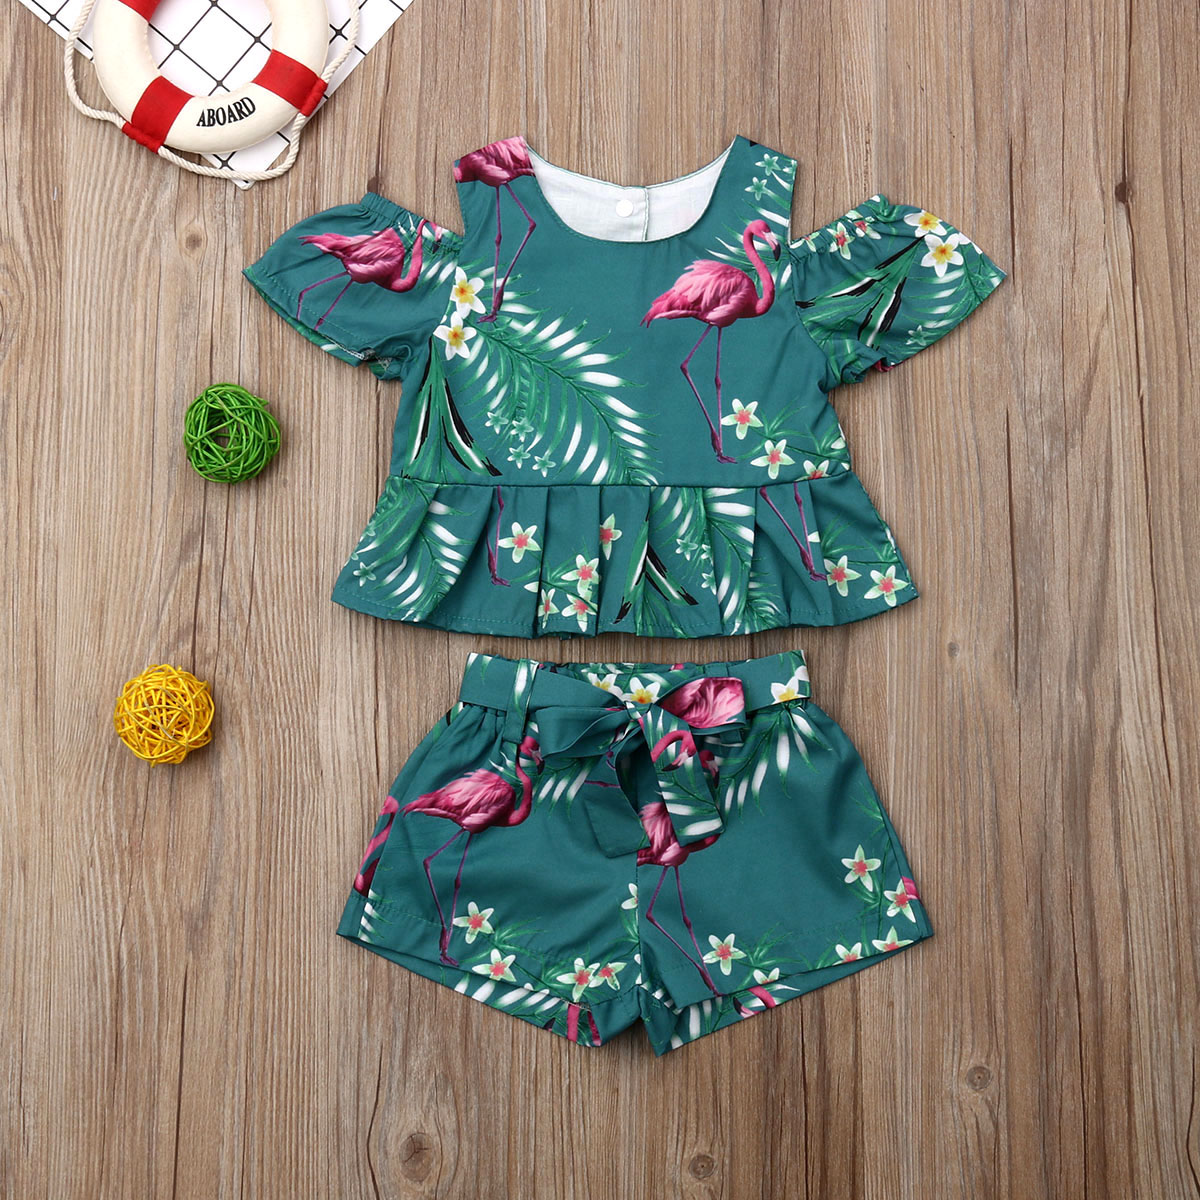 Emmababy New Brand Toddler Kids Baby Girls Summer Outfits Clothes T-shirt  Shorts  2PCS Set